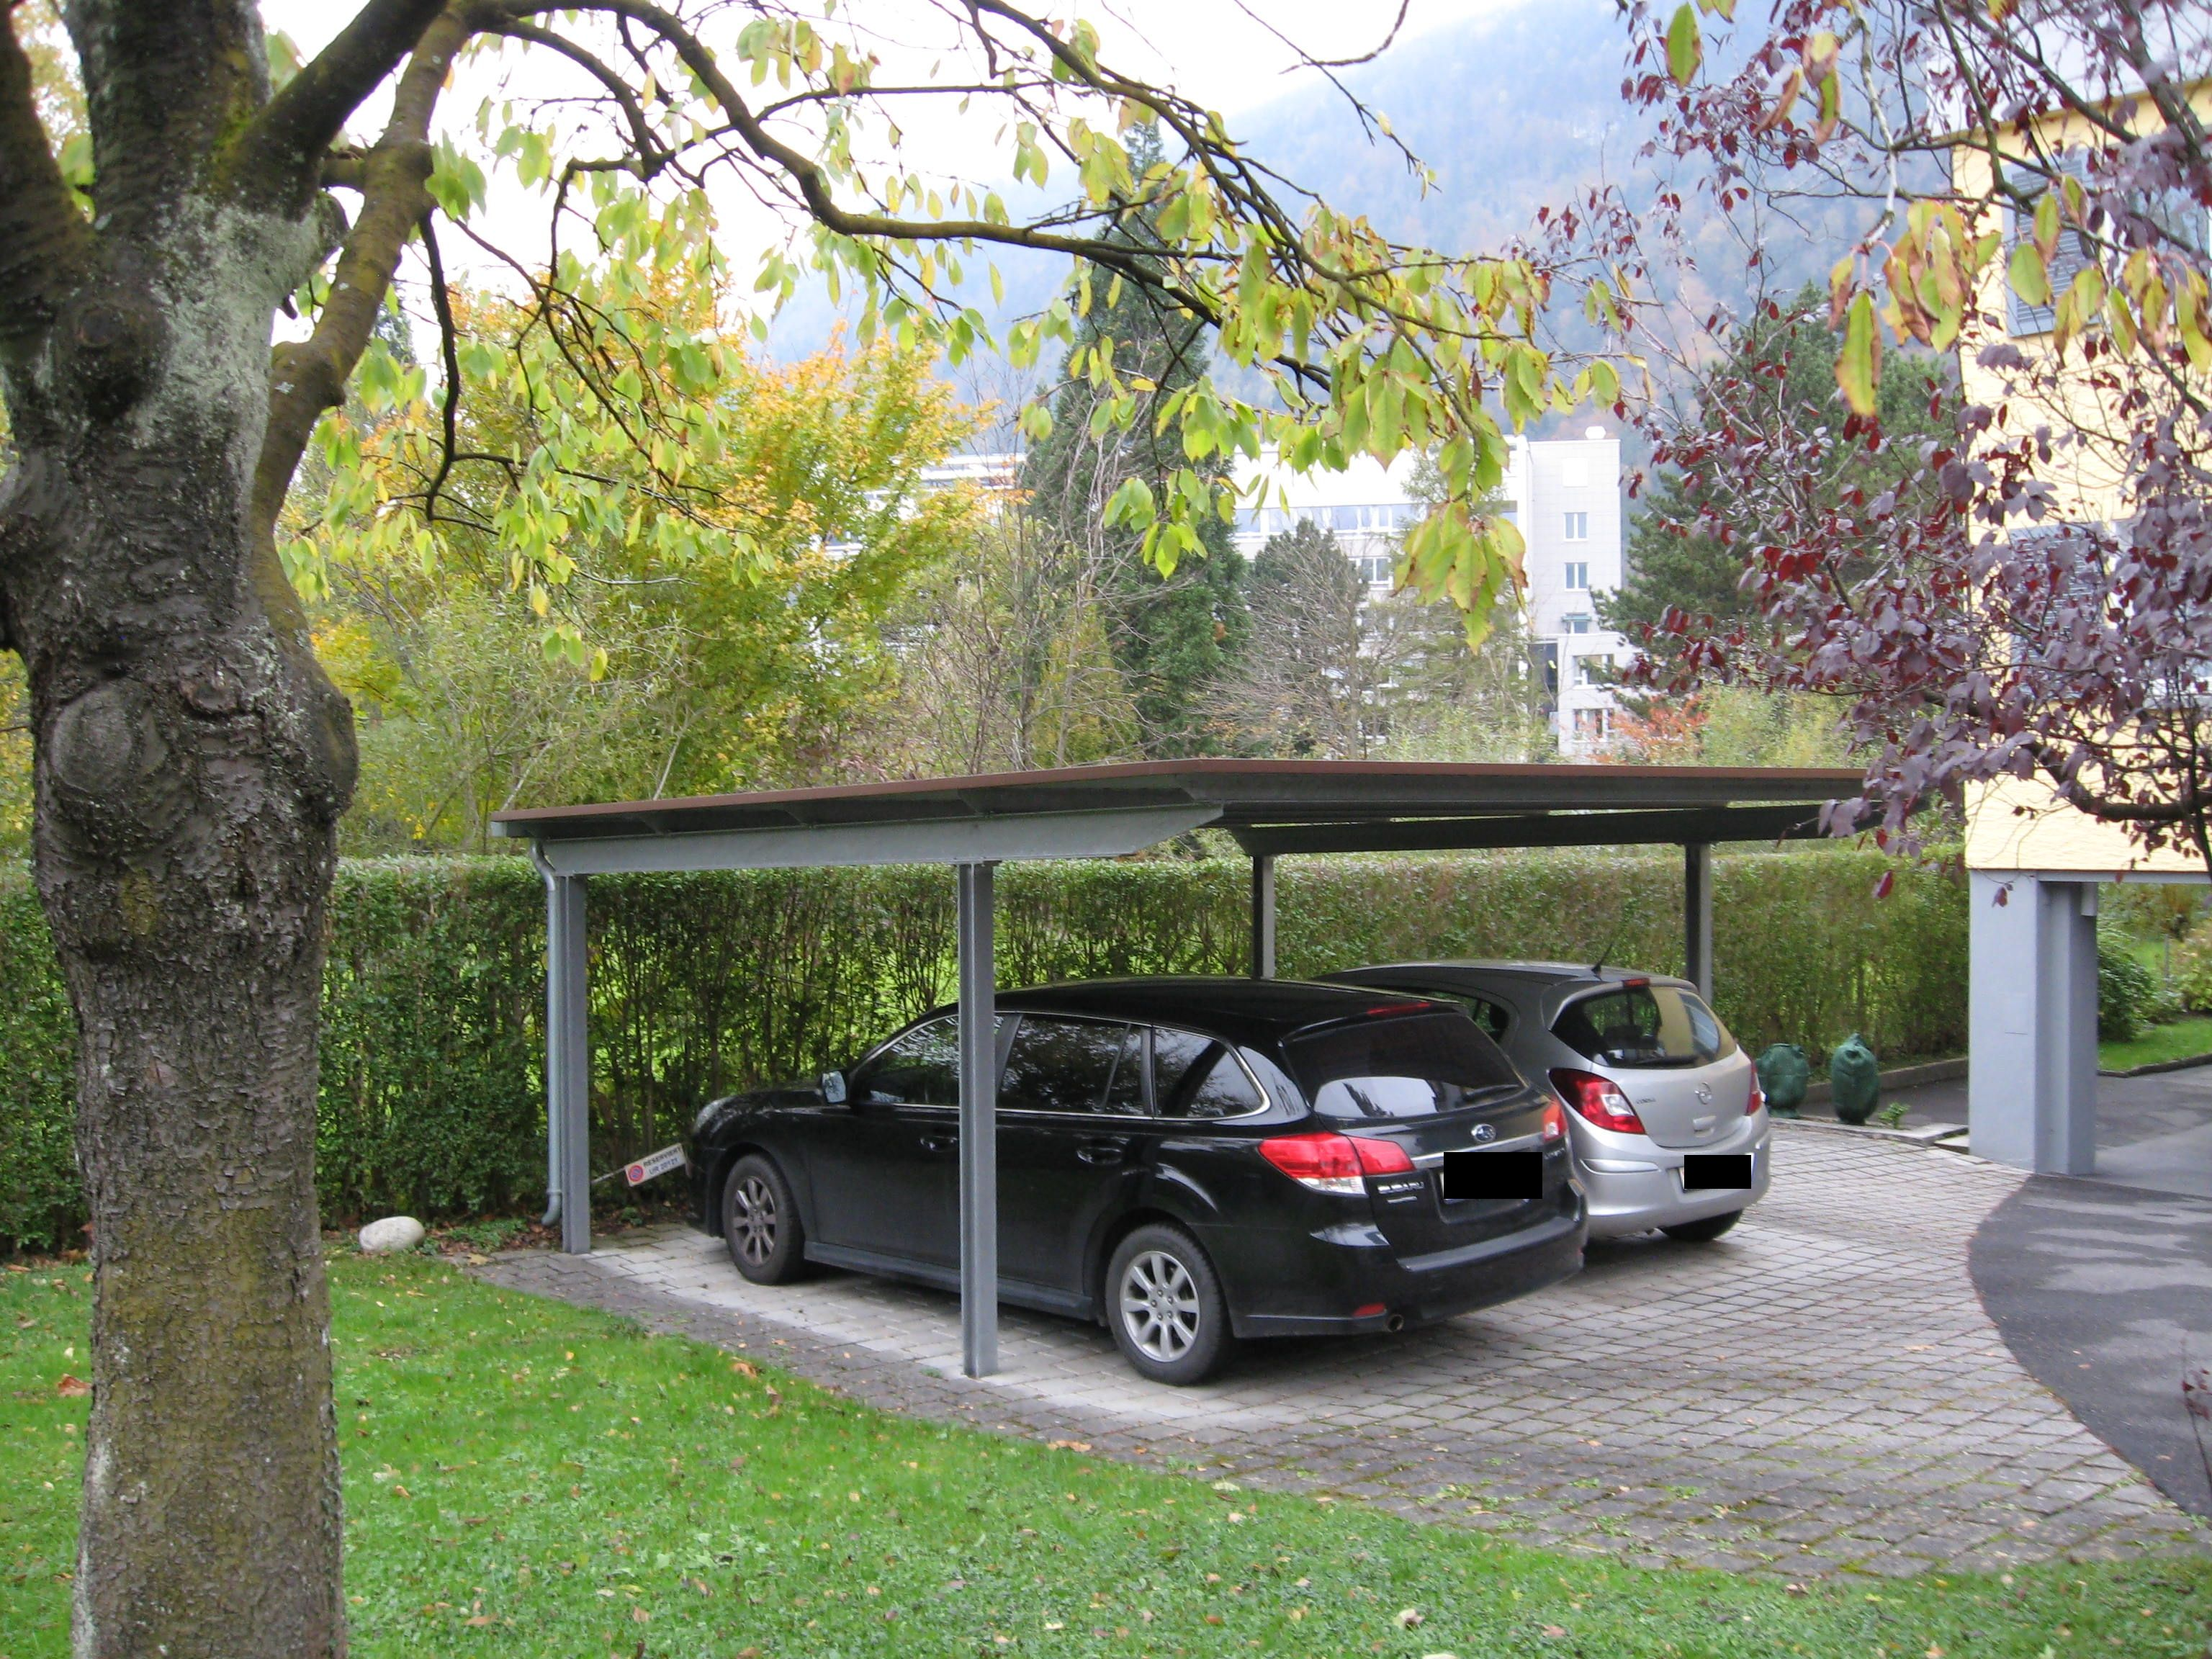 flachdach carport 6 geneigt aus stahl f r zwei autos carport flachdach ger teschuppen. Black Bedroom Furniture Sets. Home Design Ideas